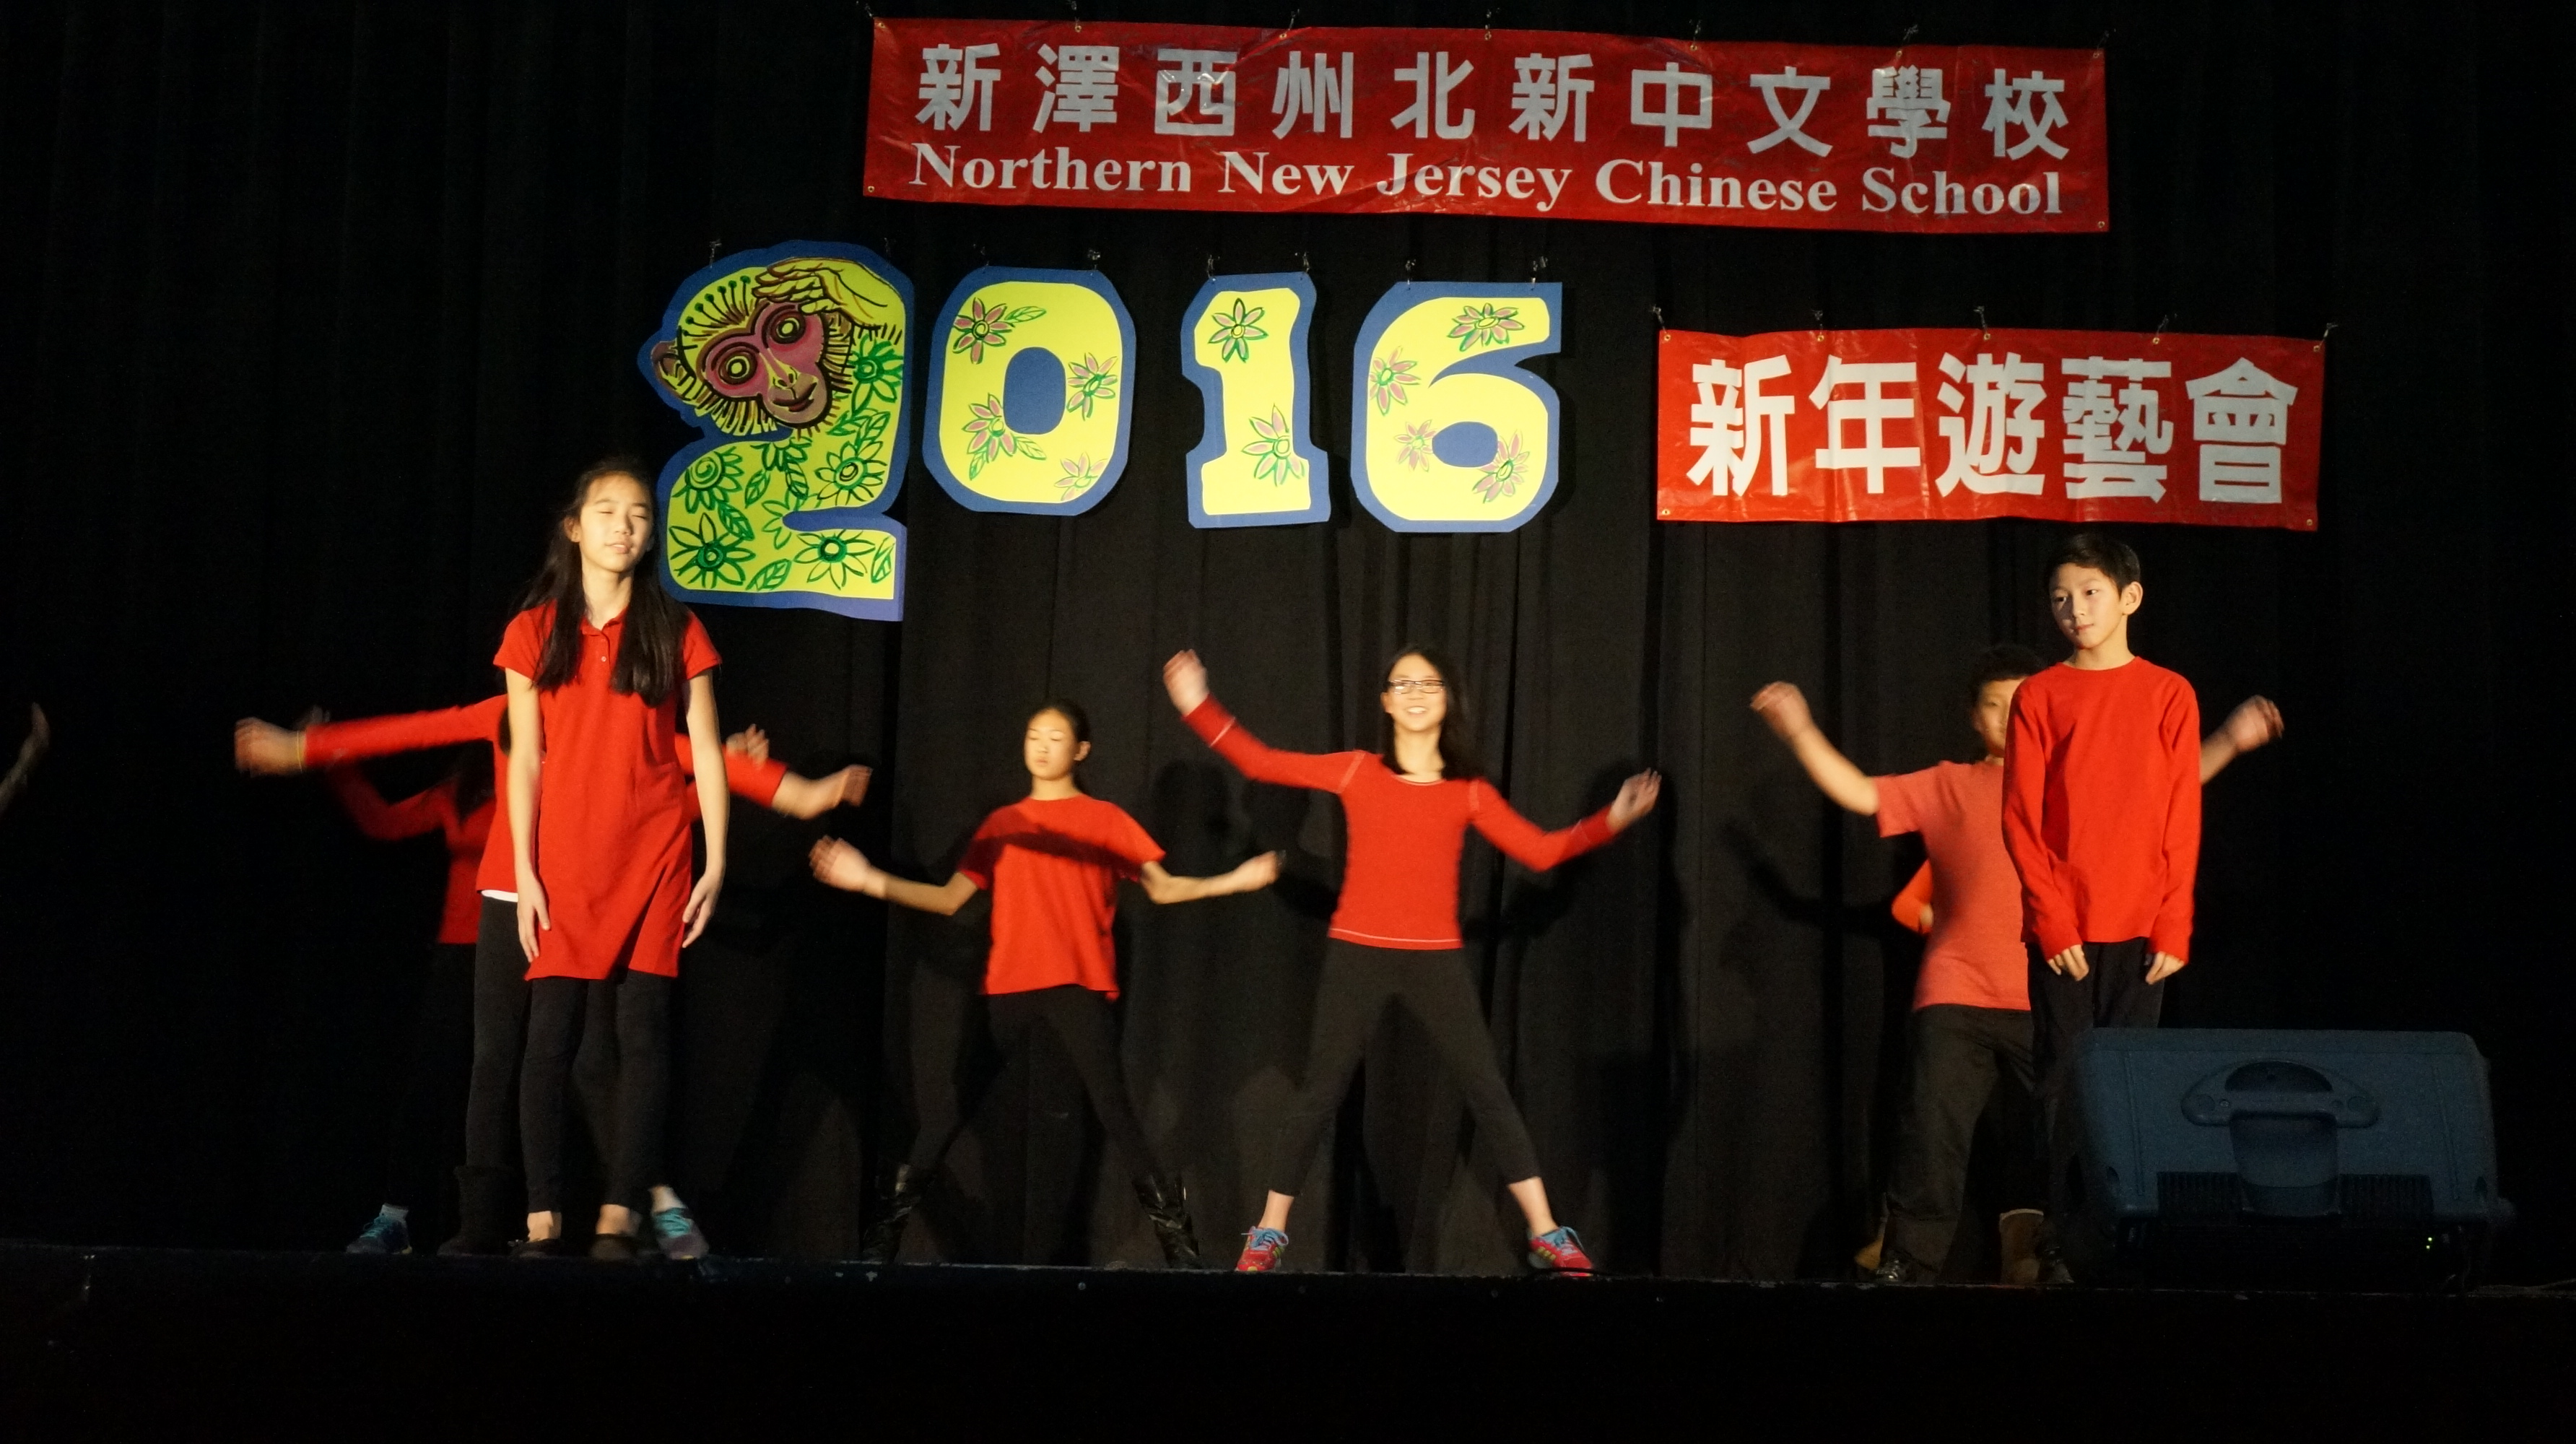 c7a475cadfc78e636caf_aaa_Chinese_New_Year_pix_221.JPG